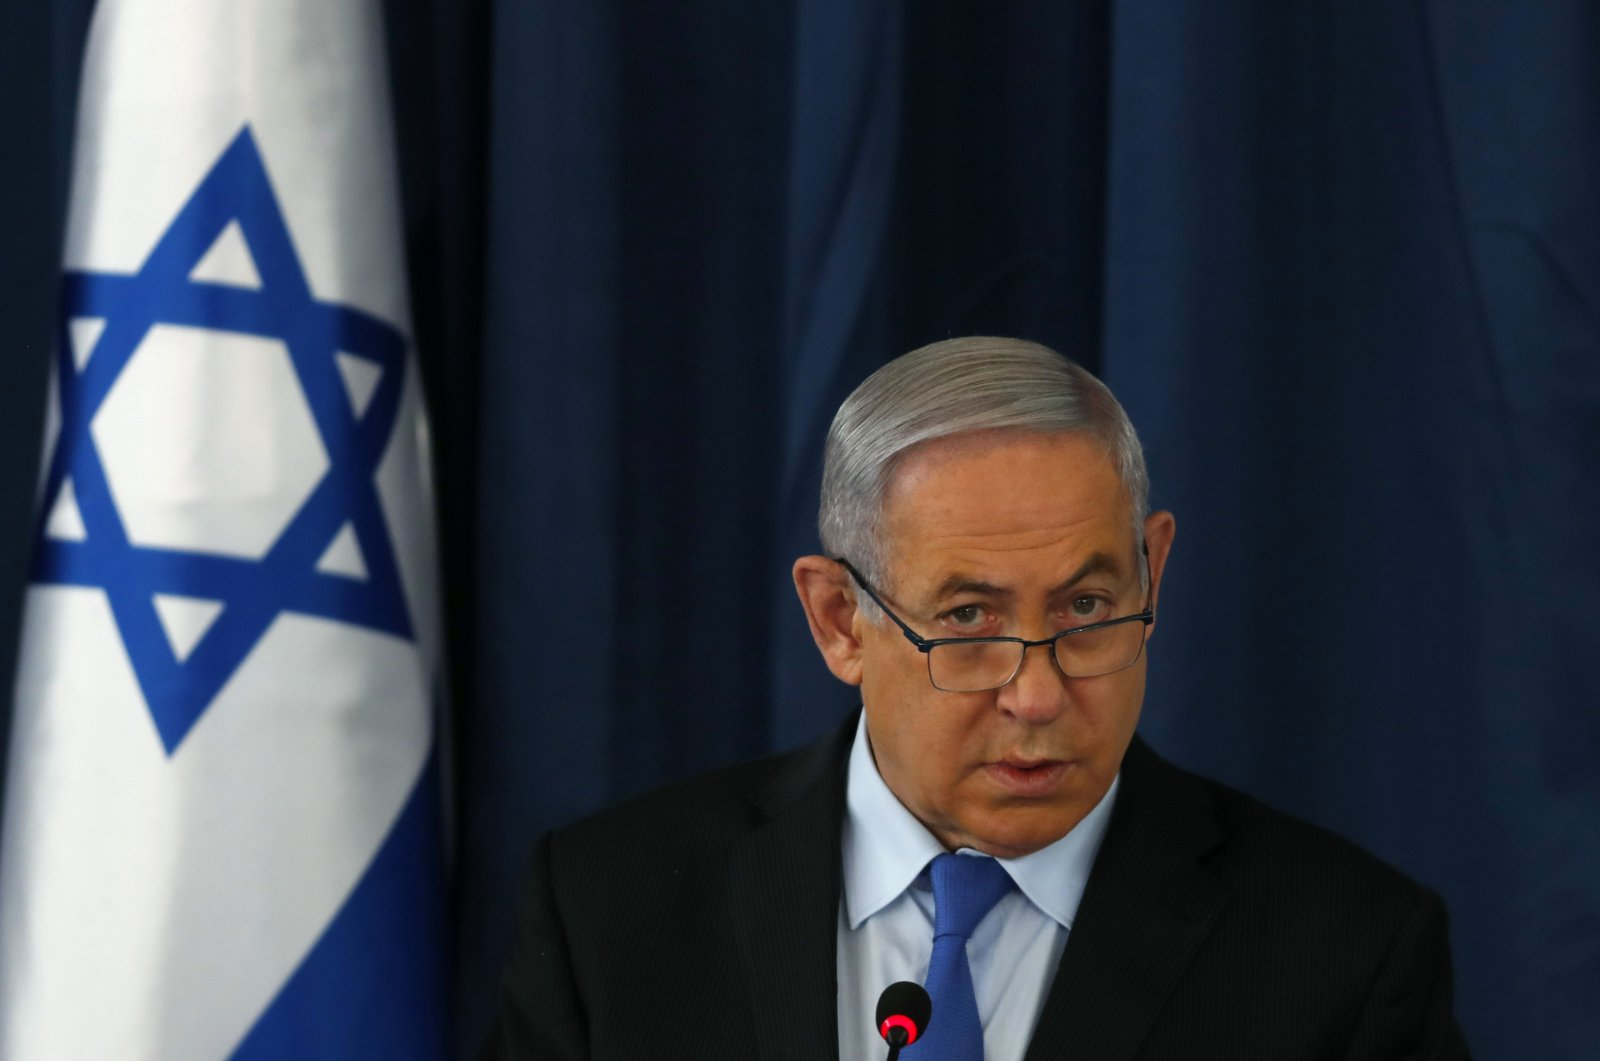 Israeli Prime Minister Benjamin Netanyahu holds the weekly cabinet meeting in Jerusalem, June 28, 2020. (AP Photo)